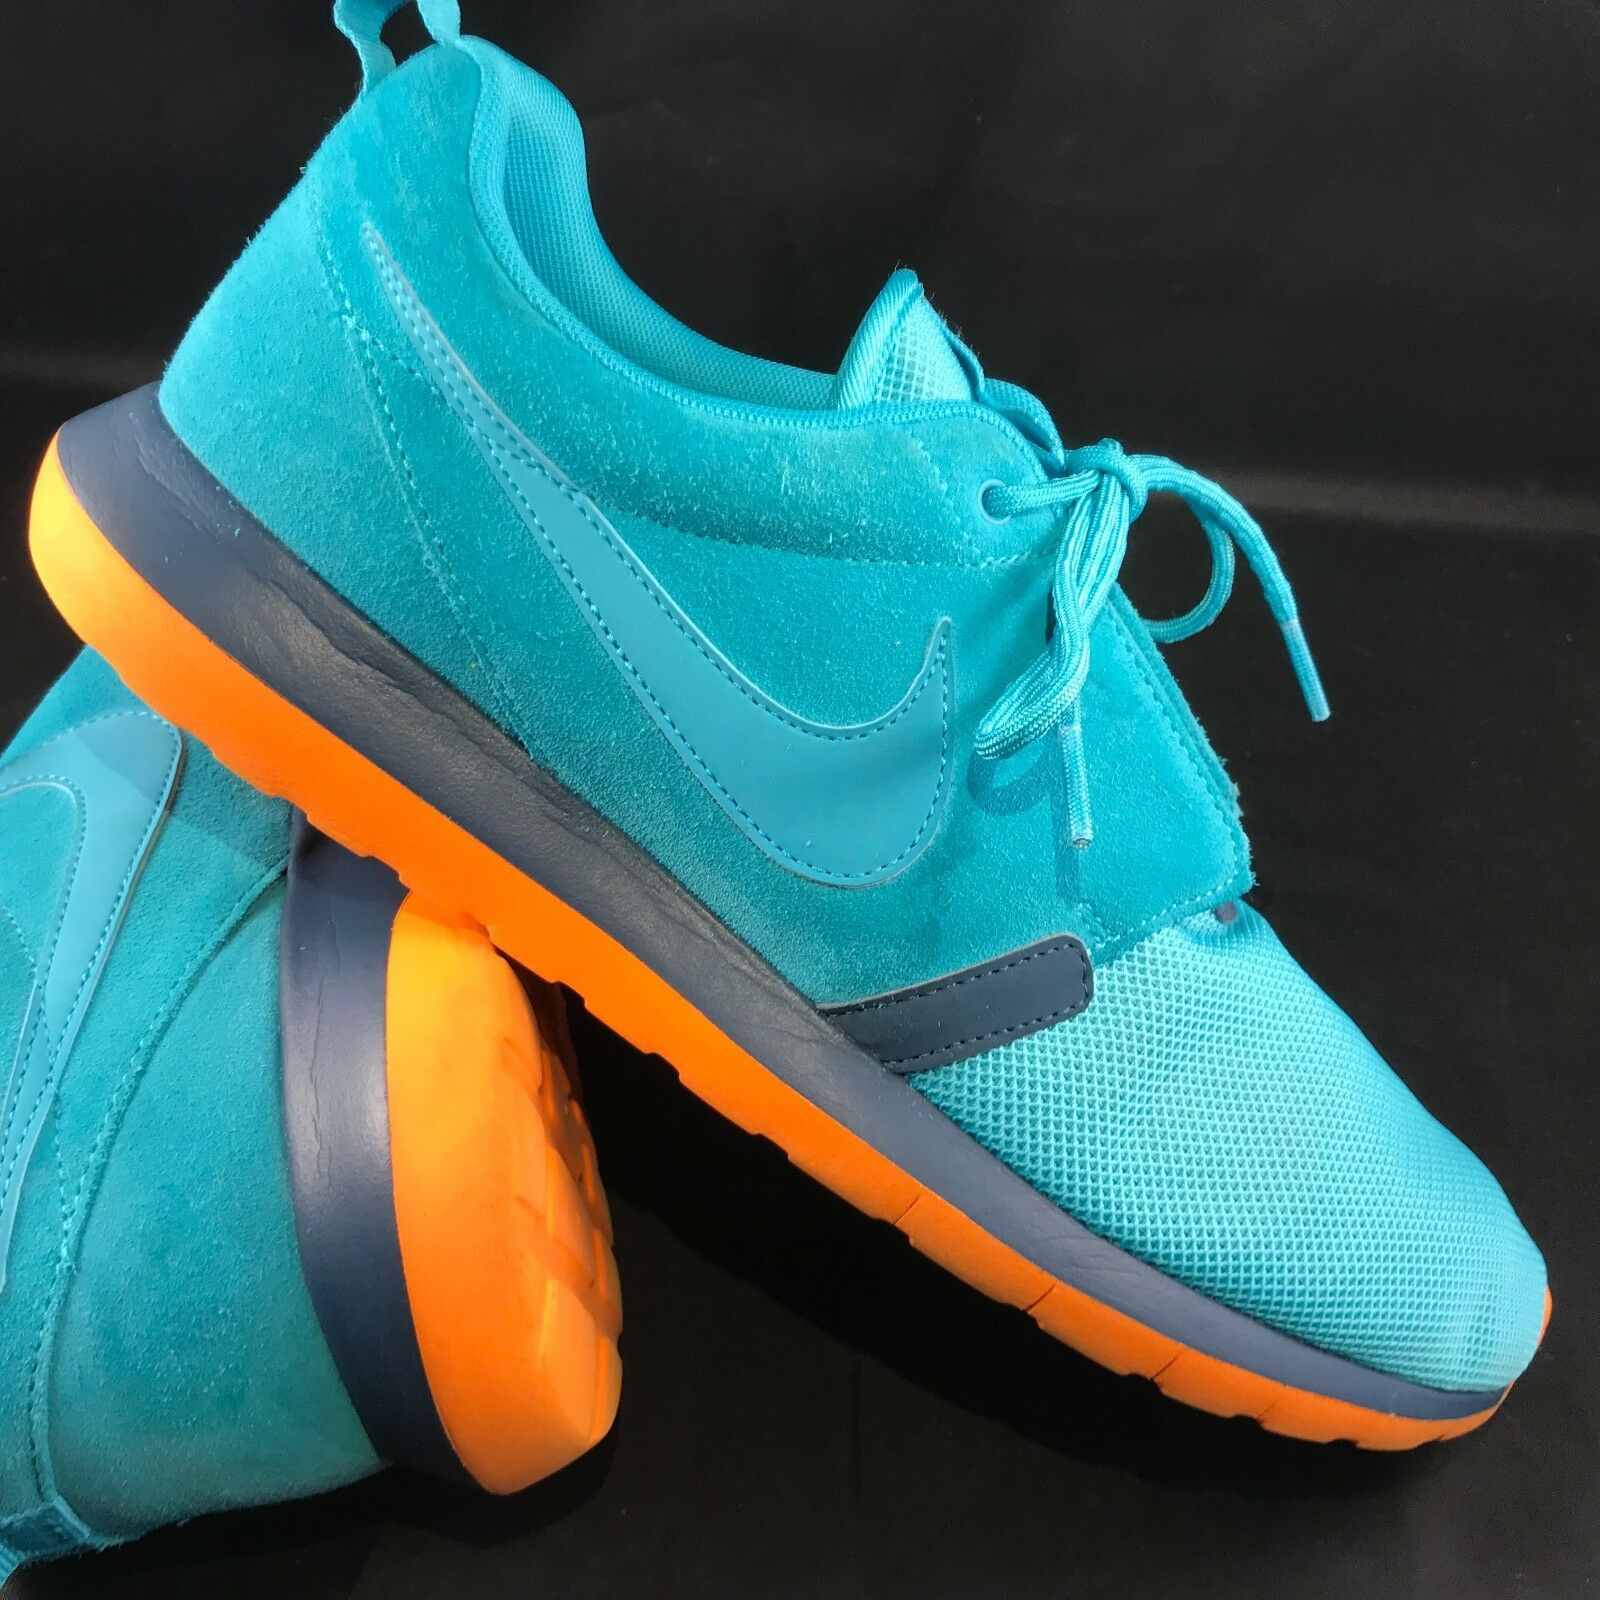 MEN'S NIKE ROSHE RUN NM SHOES SIZE 11 US 45 EUR dusty cactus bluee 631749 301